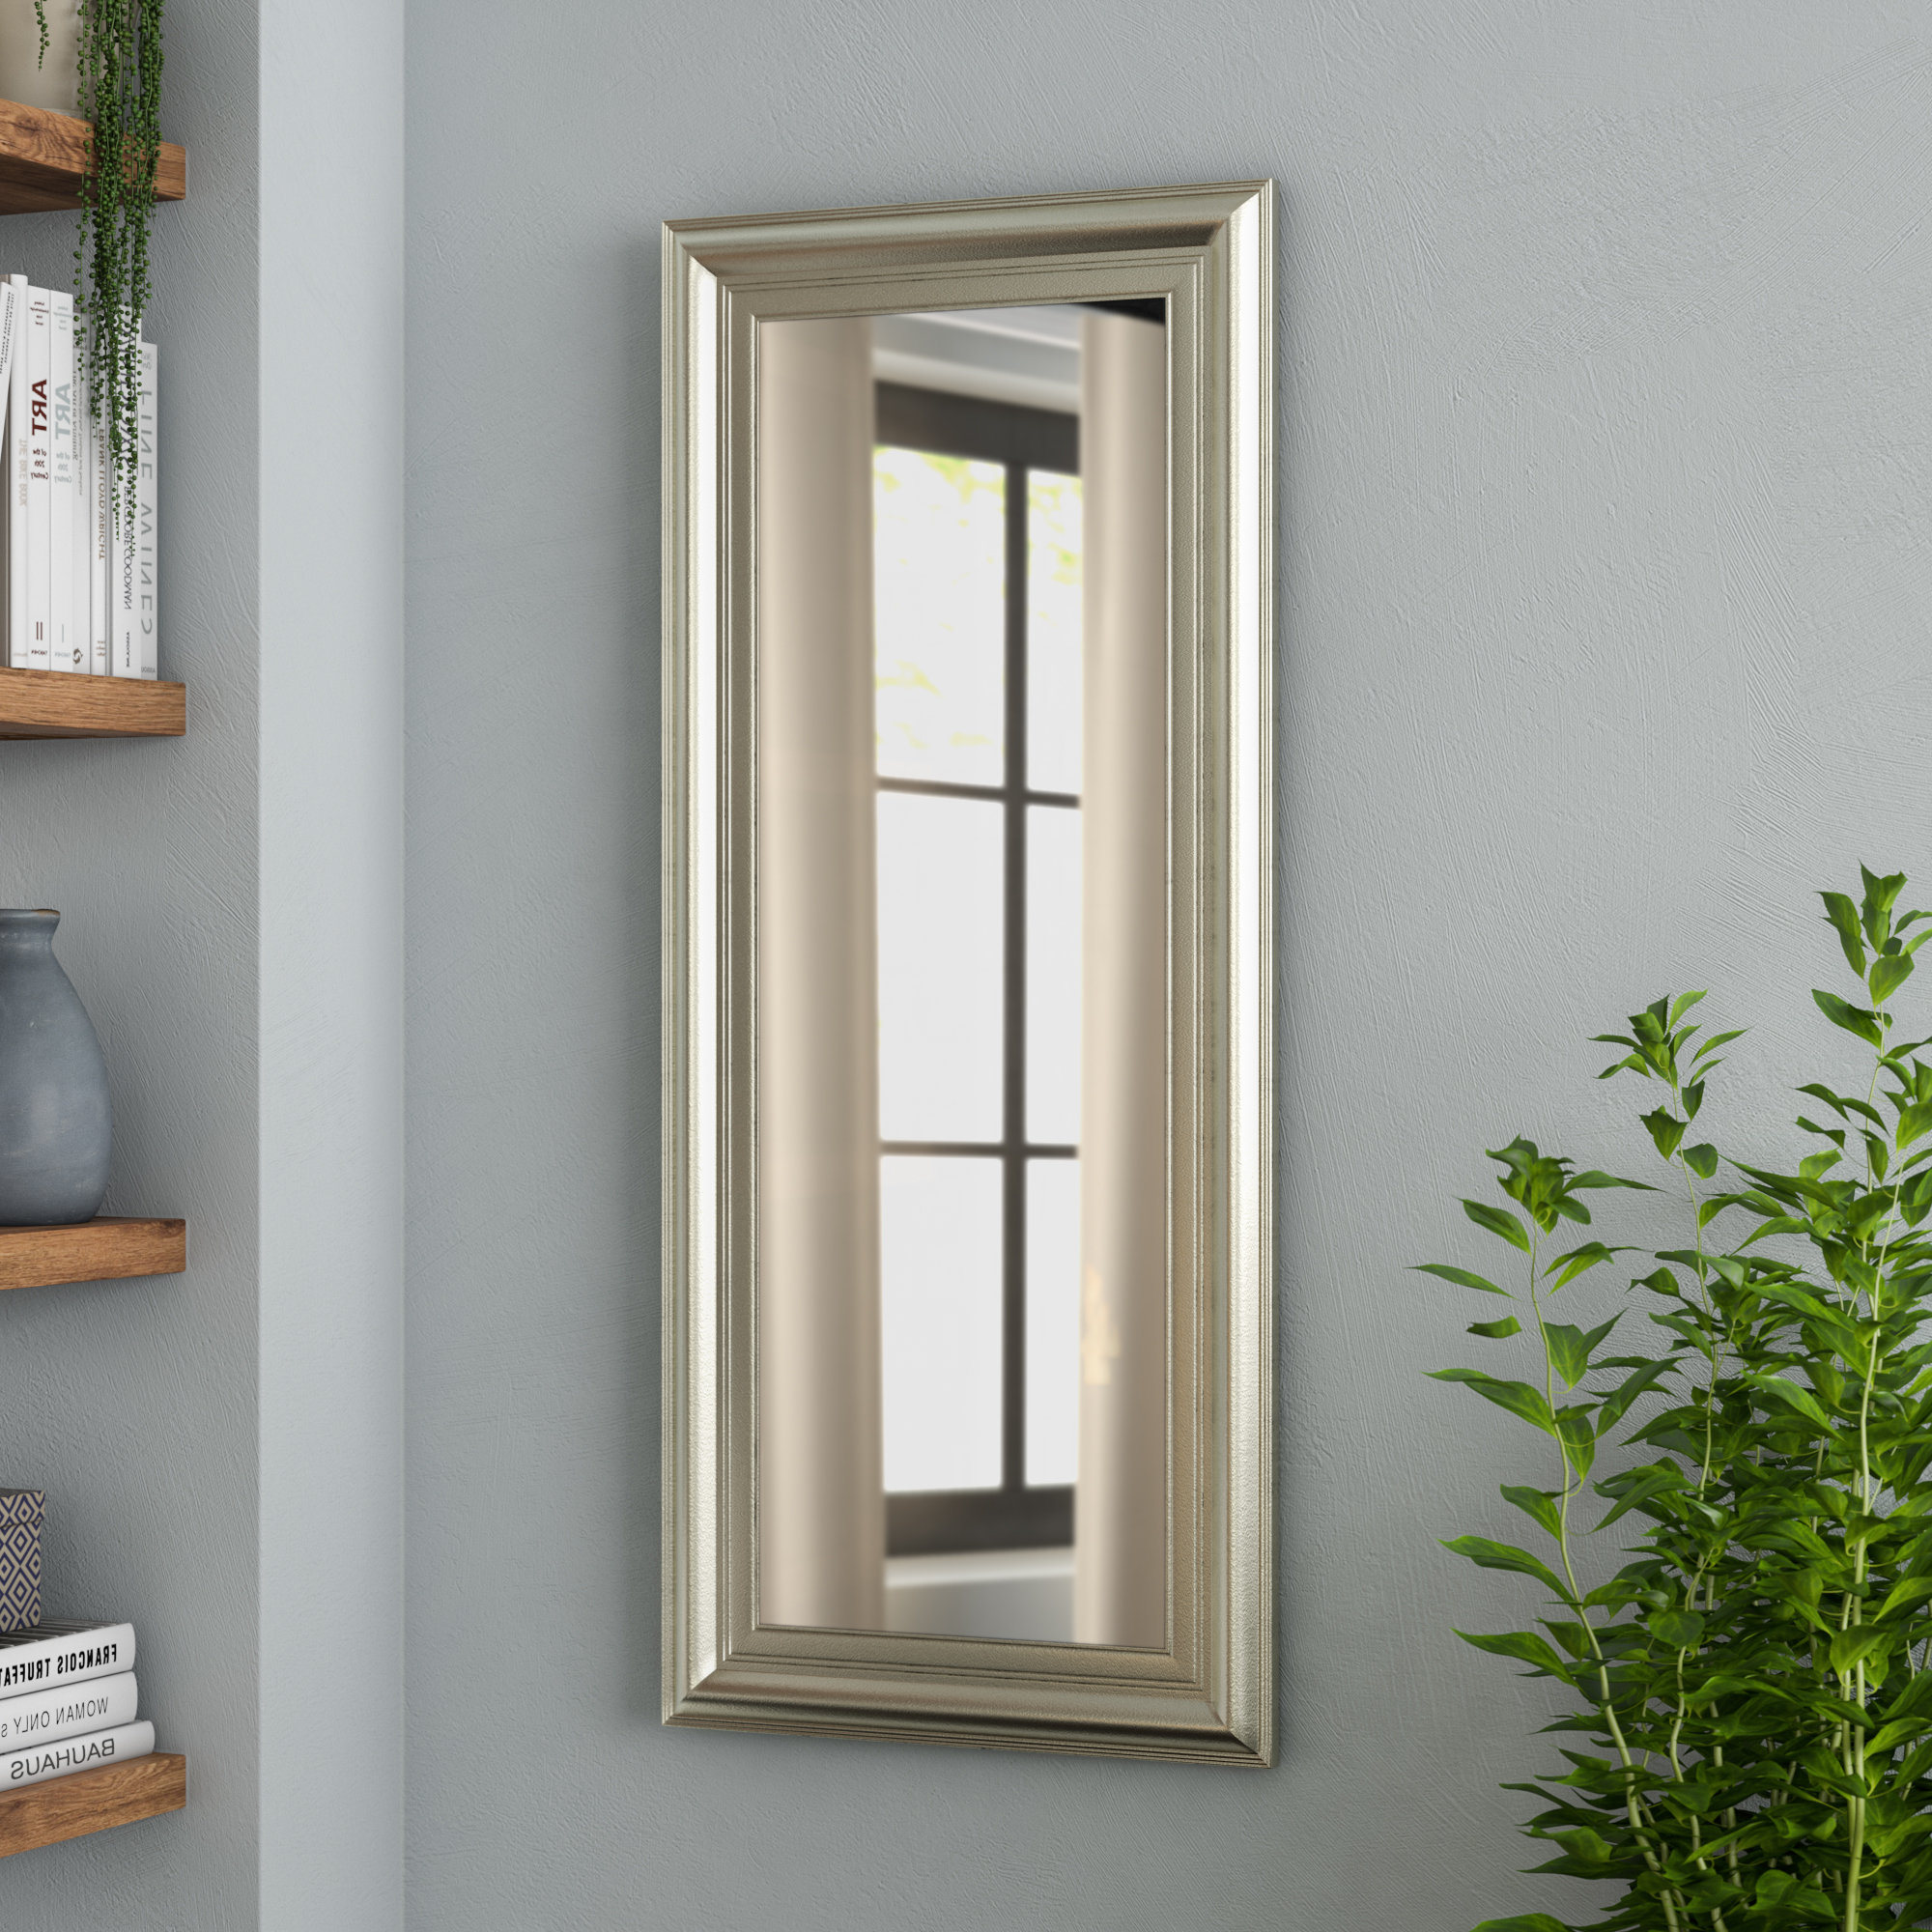 Dedrick Decorative Framed Modern And Contemporary Wall Mirror With Regard To Newest Decorative Contemporary Wall Mirrors (View 8 of 20)